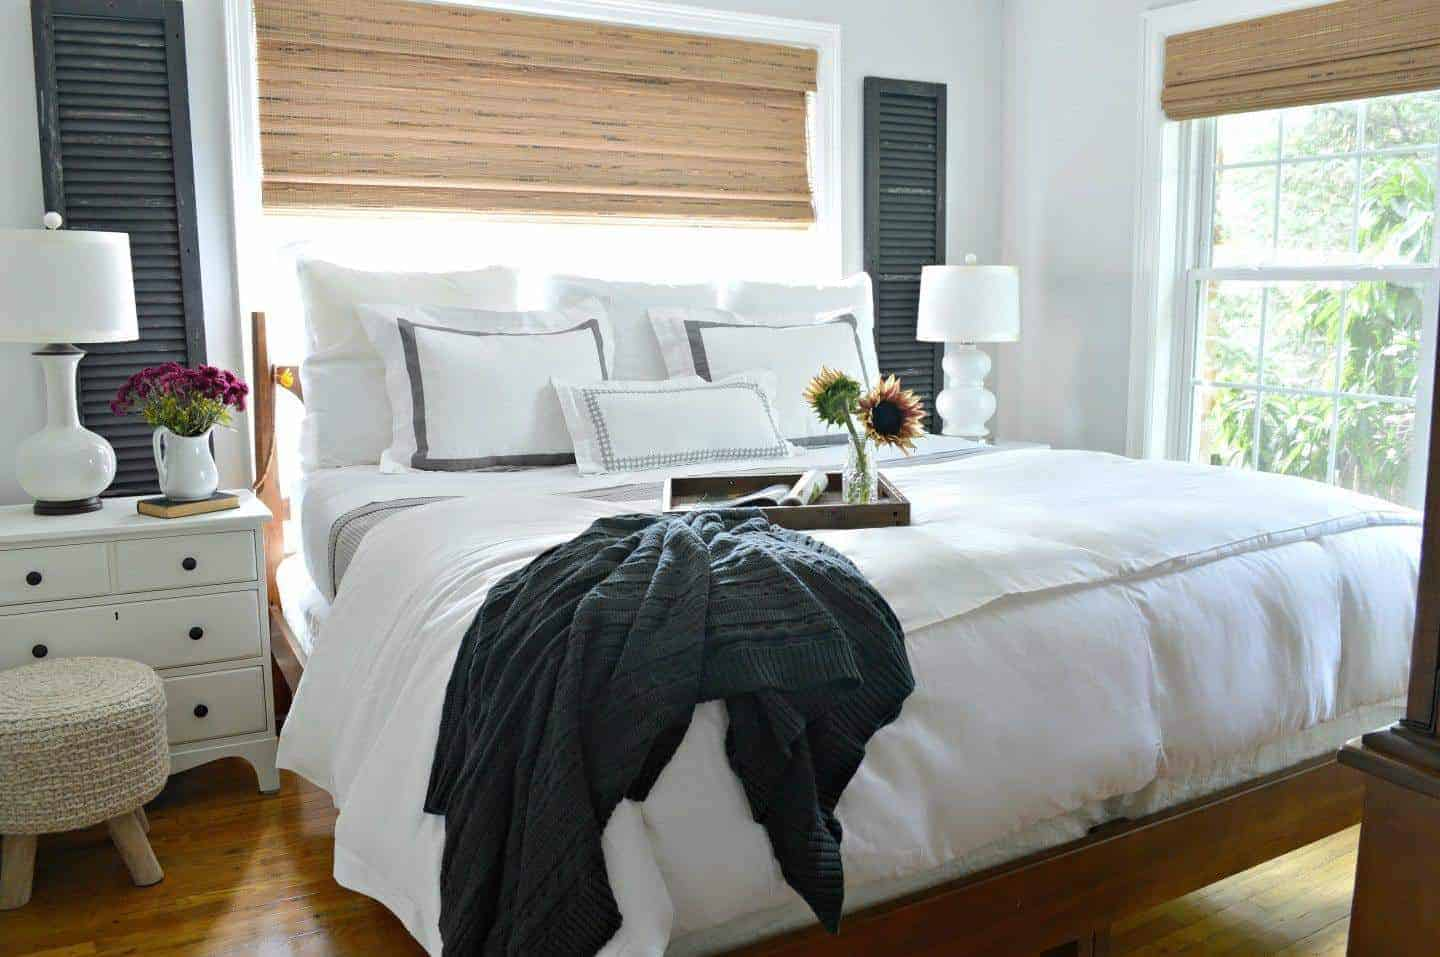 view of master bedroom with king size bed dressed with white linens and old wooden shutters hanging on wall next to window